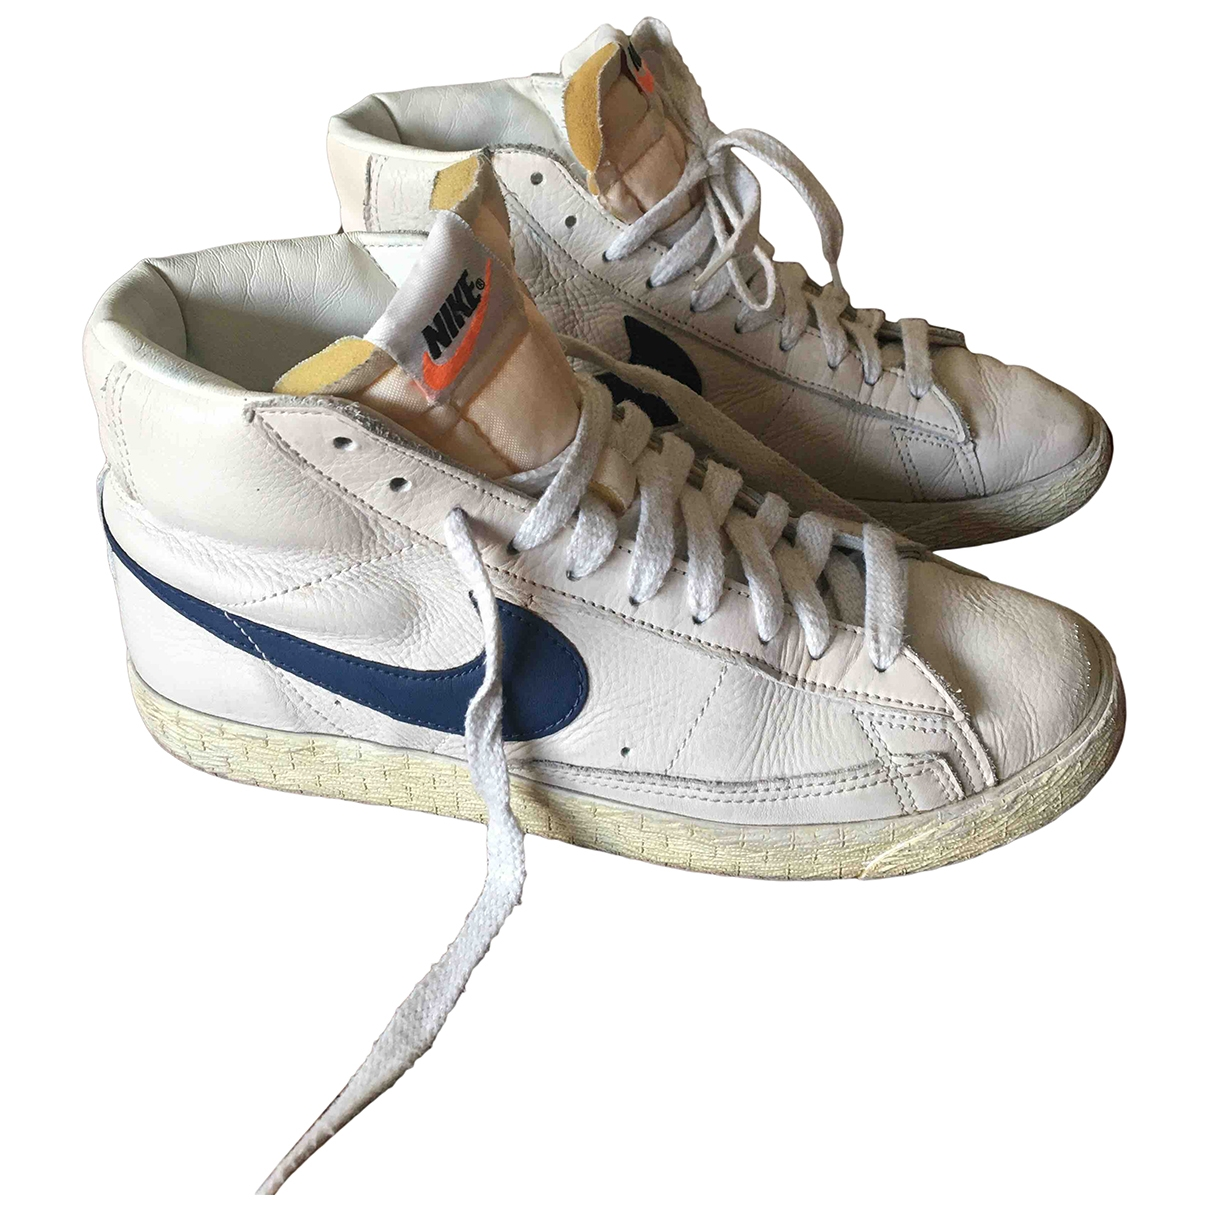 Nike Blazer White Leather Trainers for Women 7 US